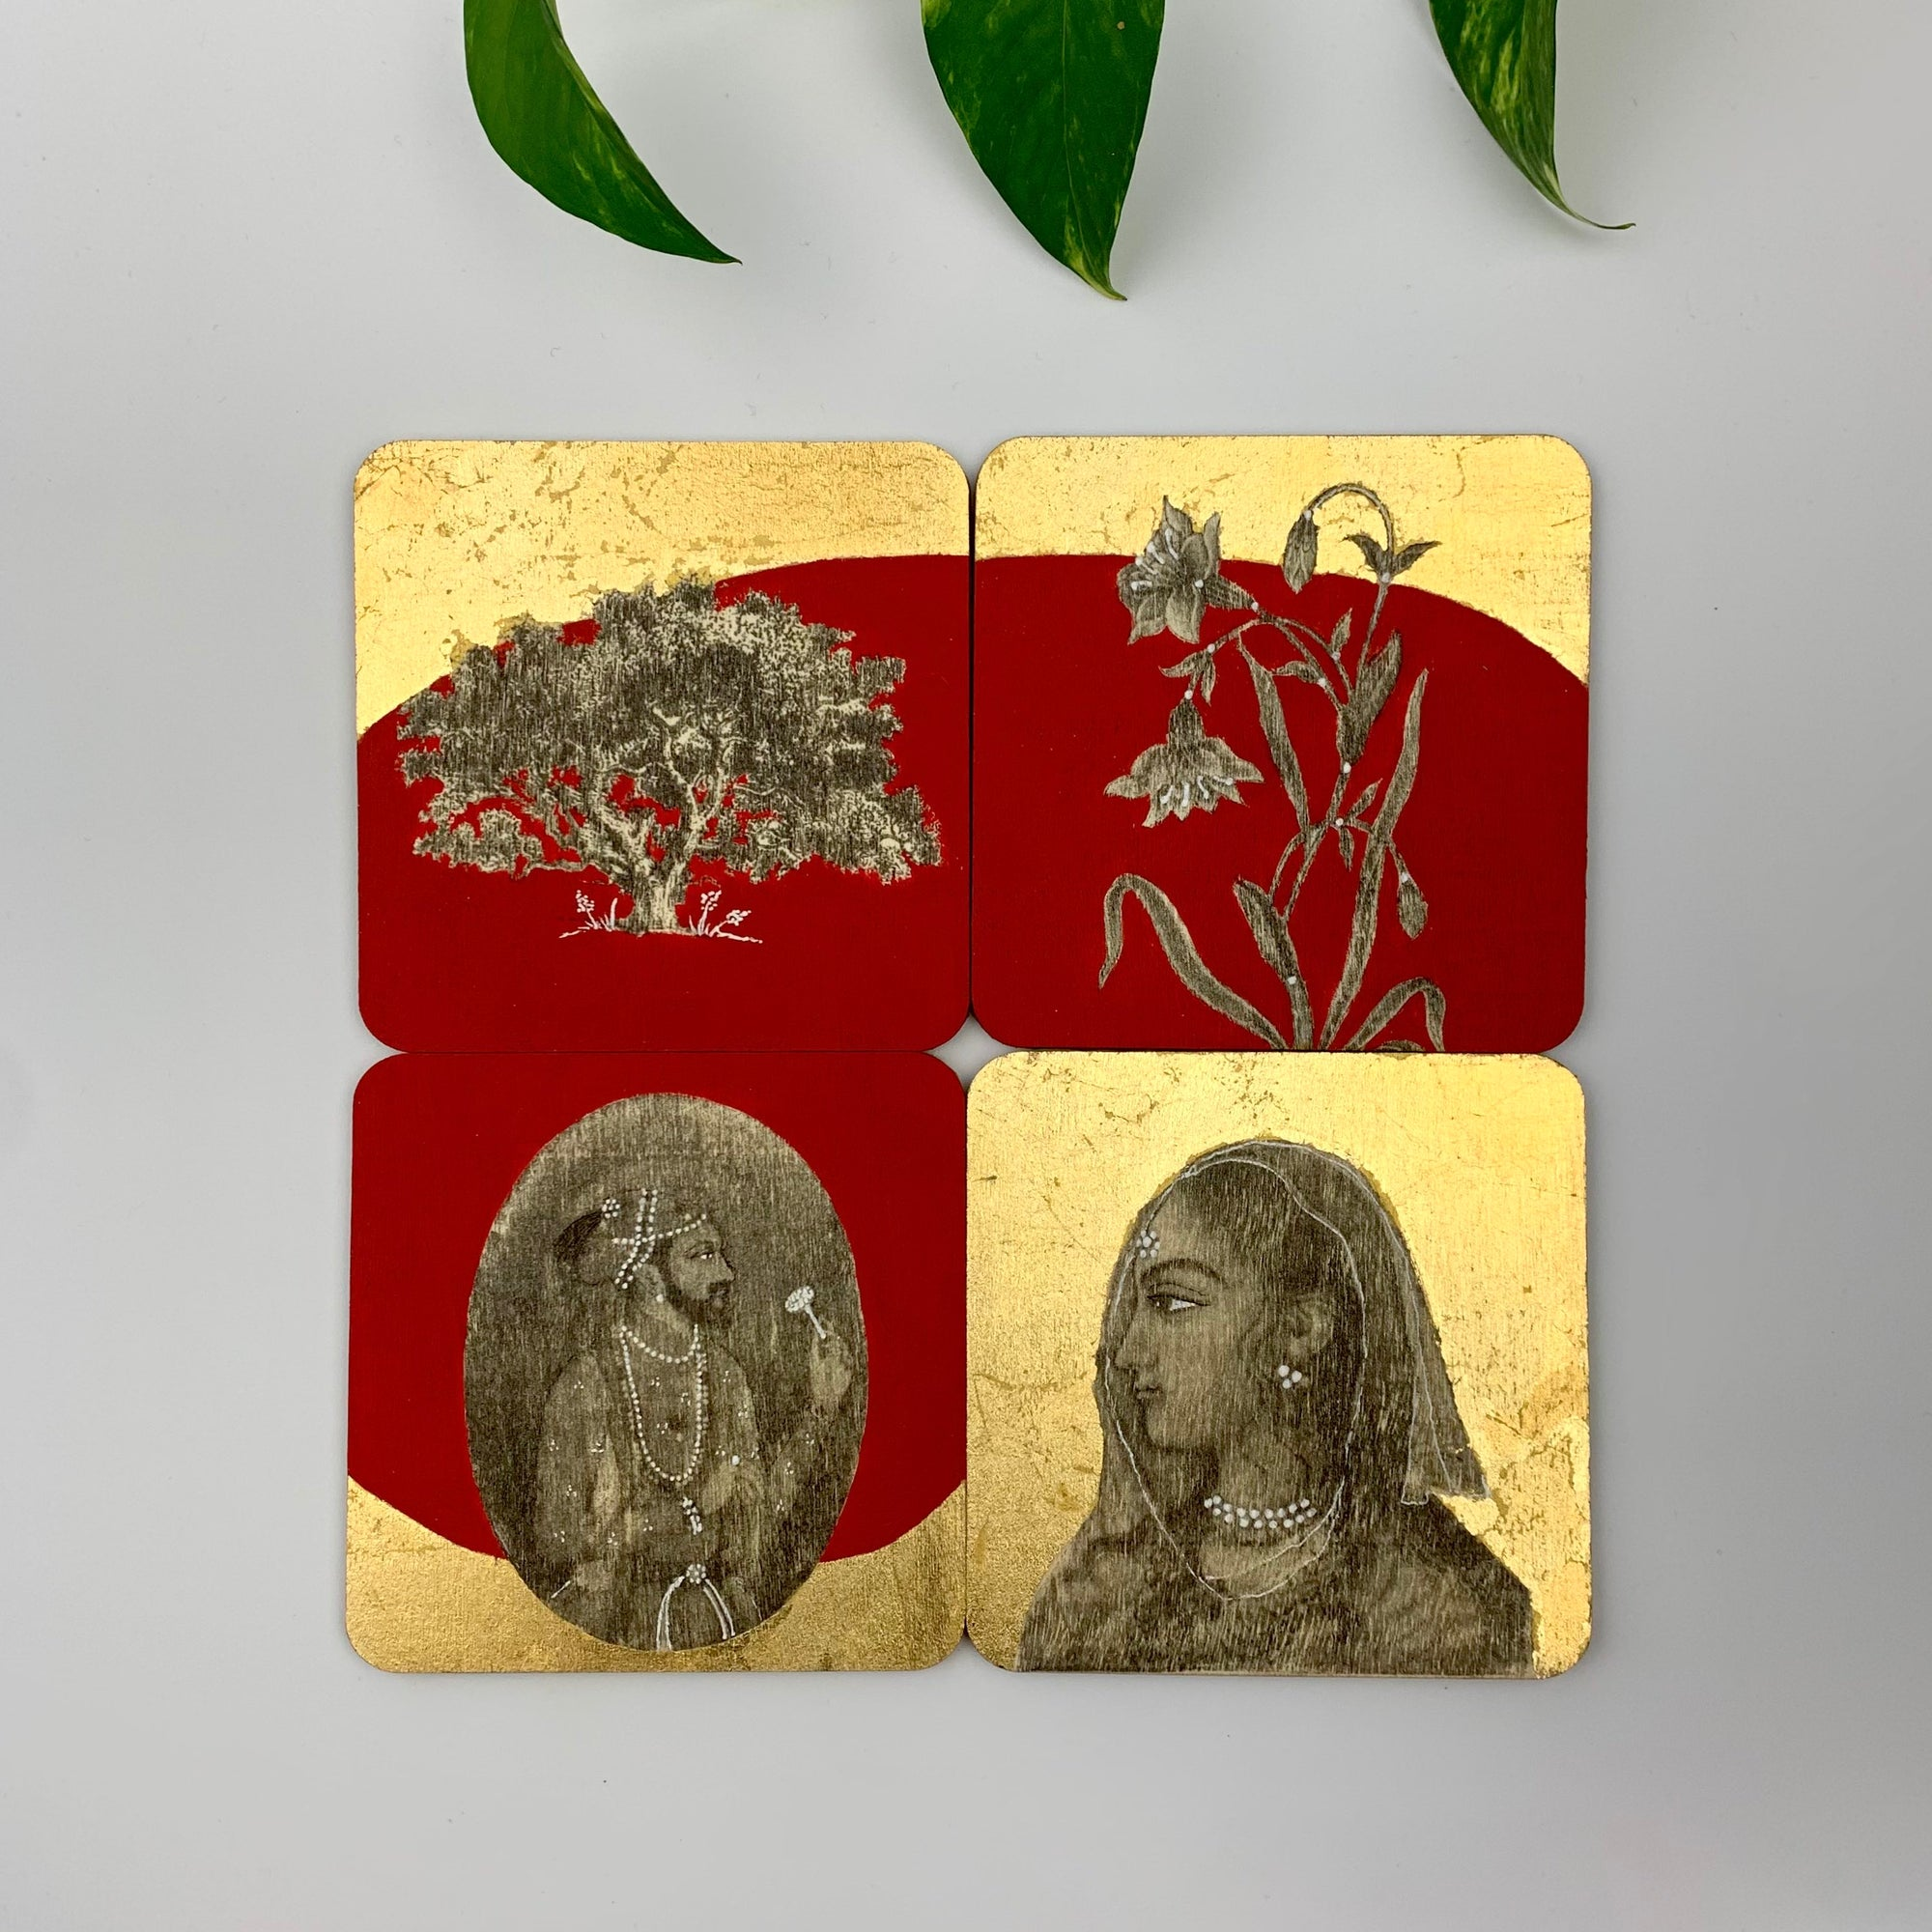 Coaster 13_Raja Rani II _Set of 4 Coasters